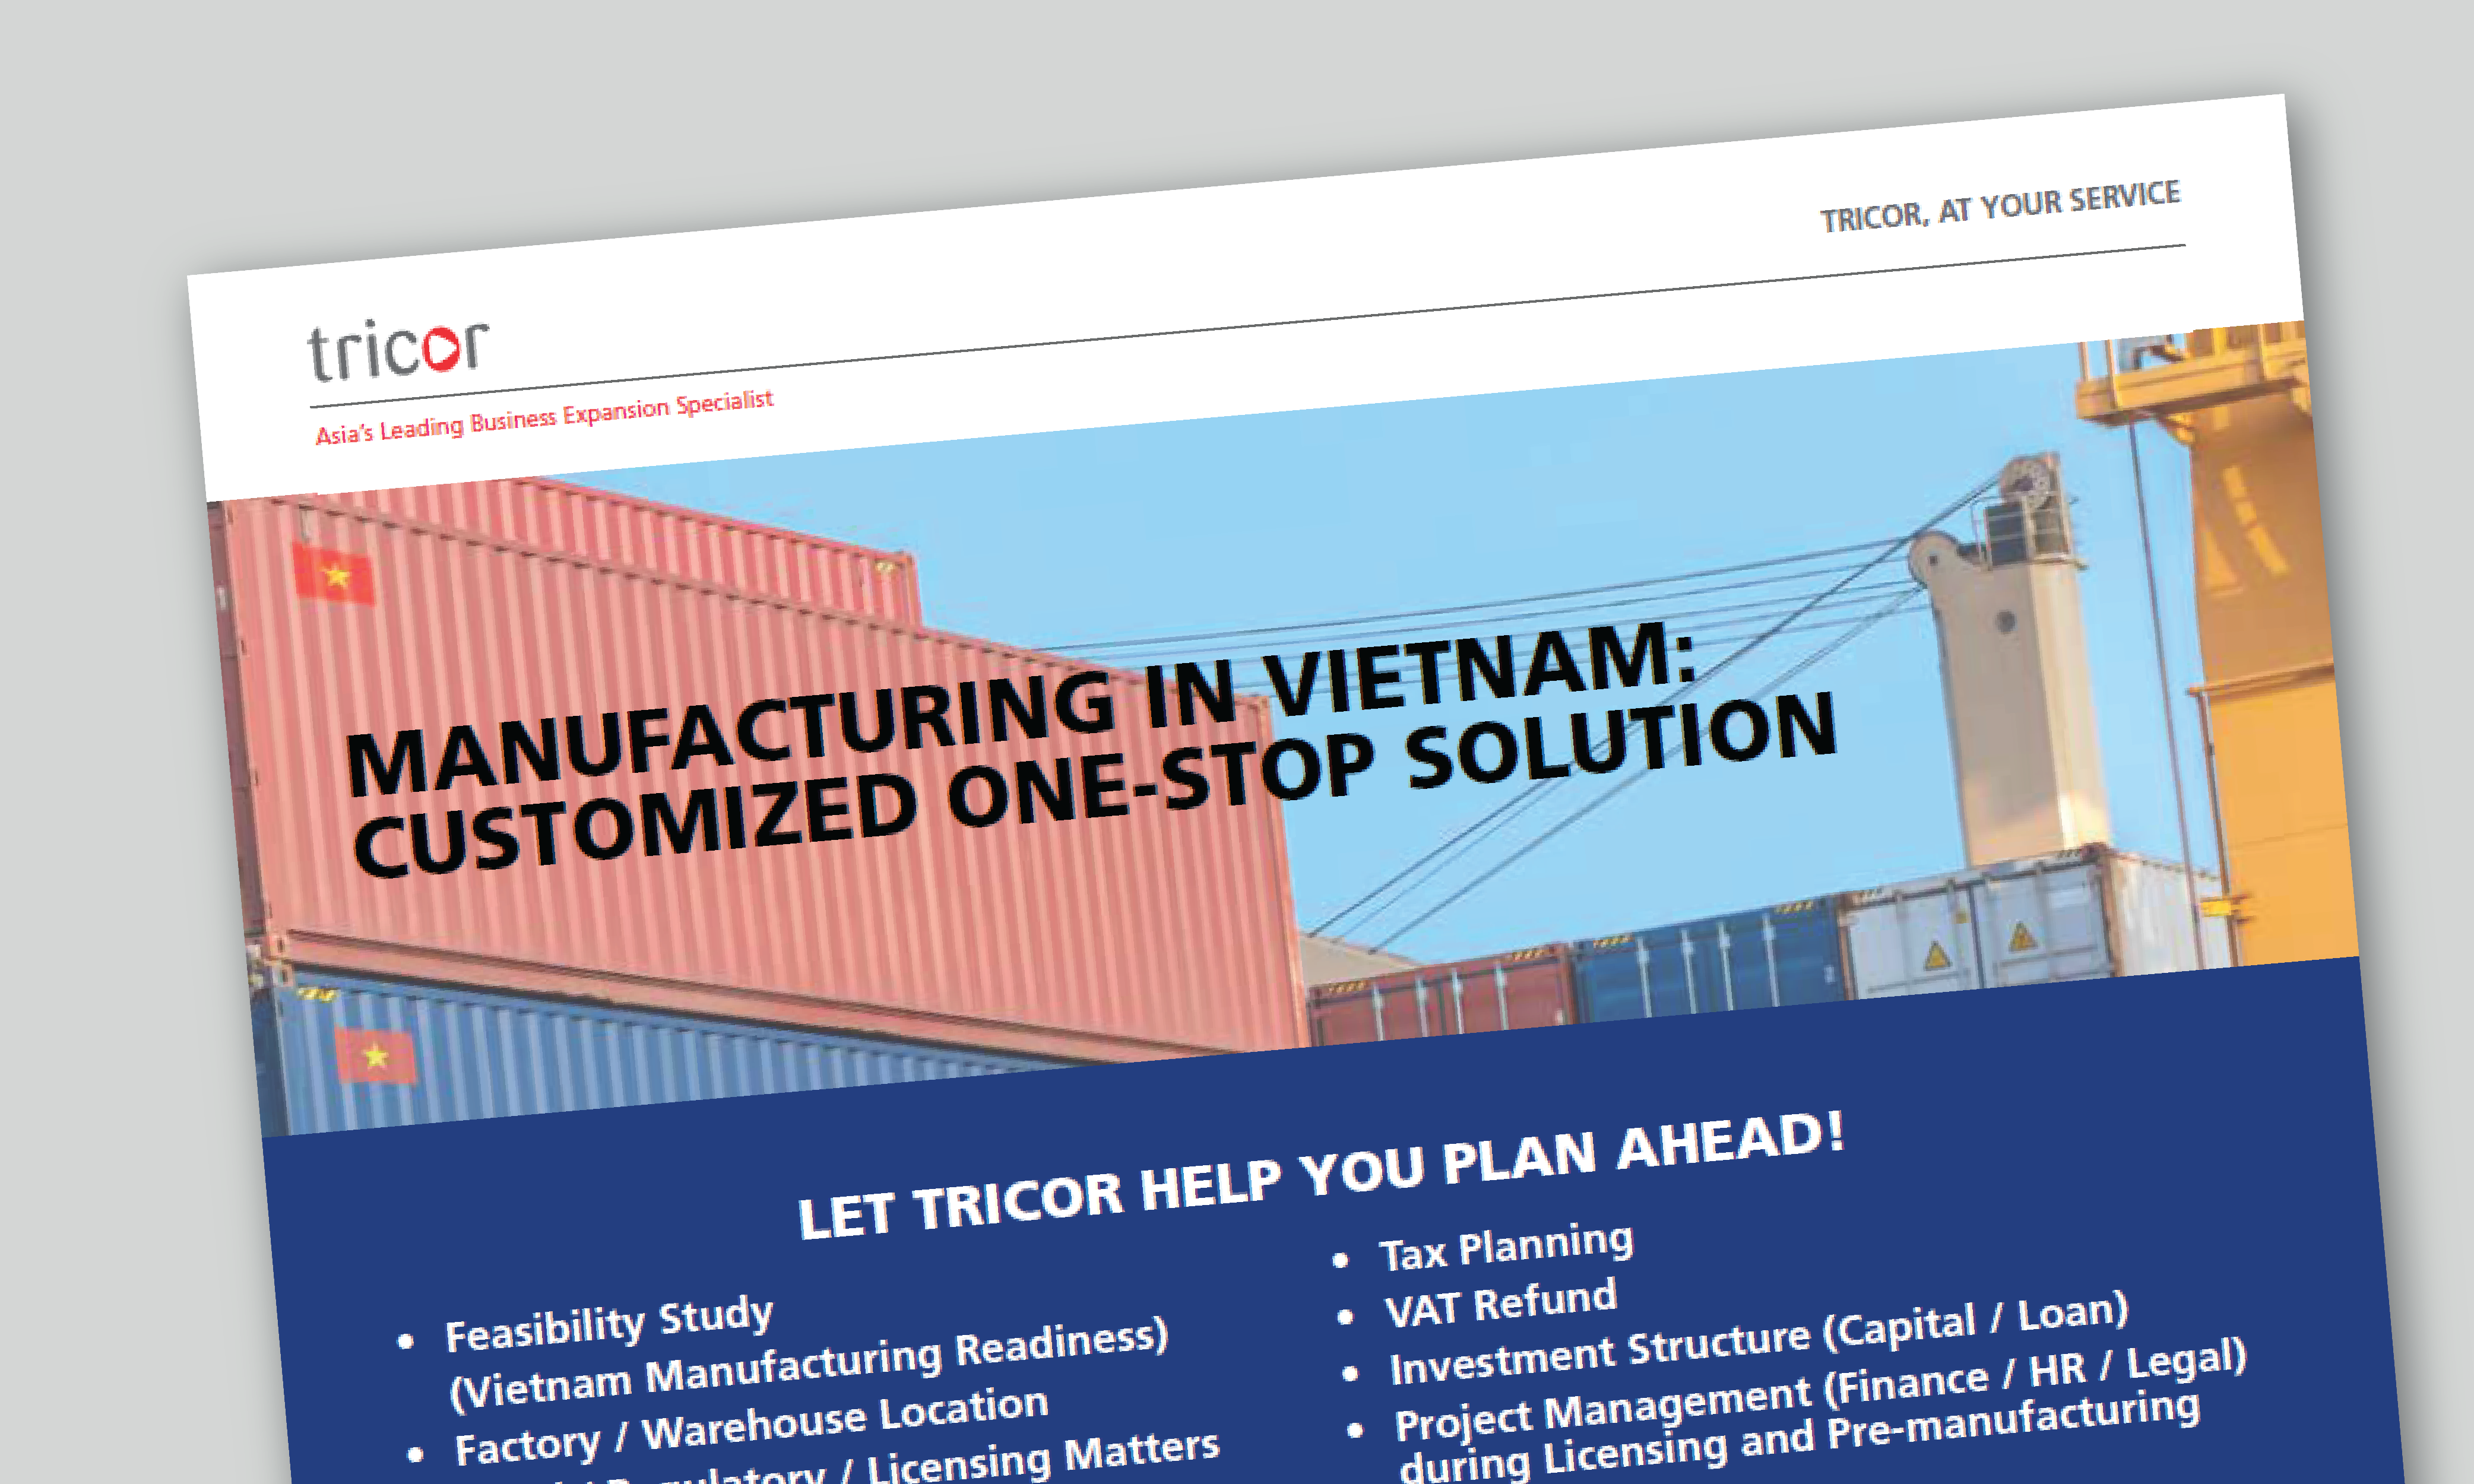 manufacturing-in-vietnam-customized-one---stop-solution-01